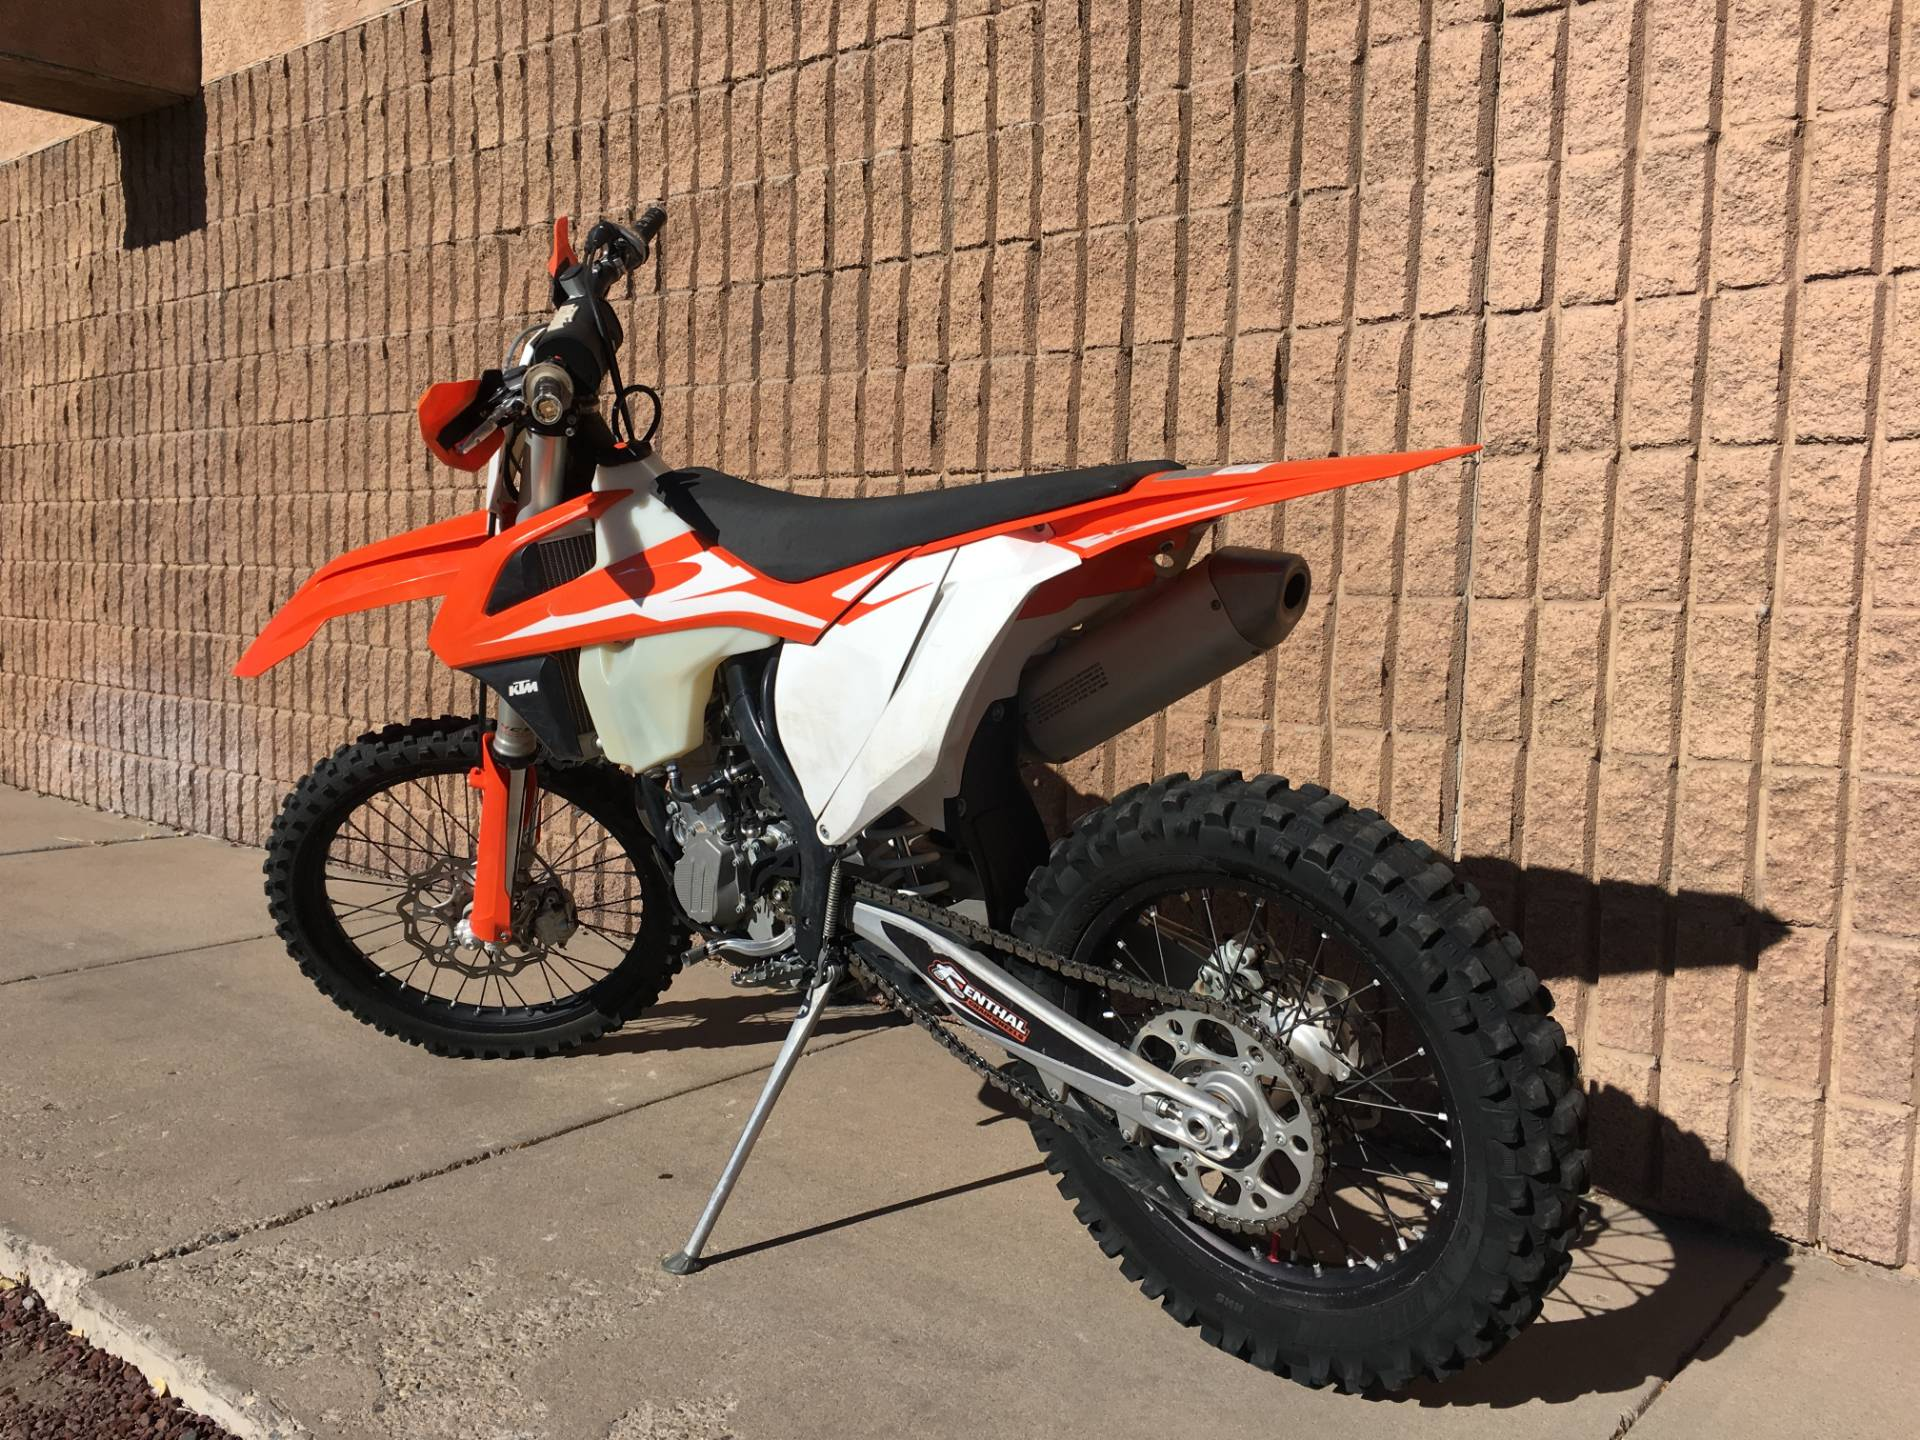 2016 KTM 450 XC-F in Albuquerque, New Mexico